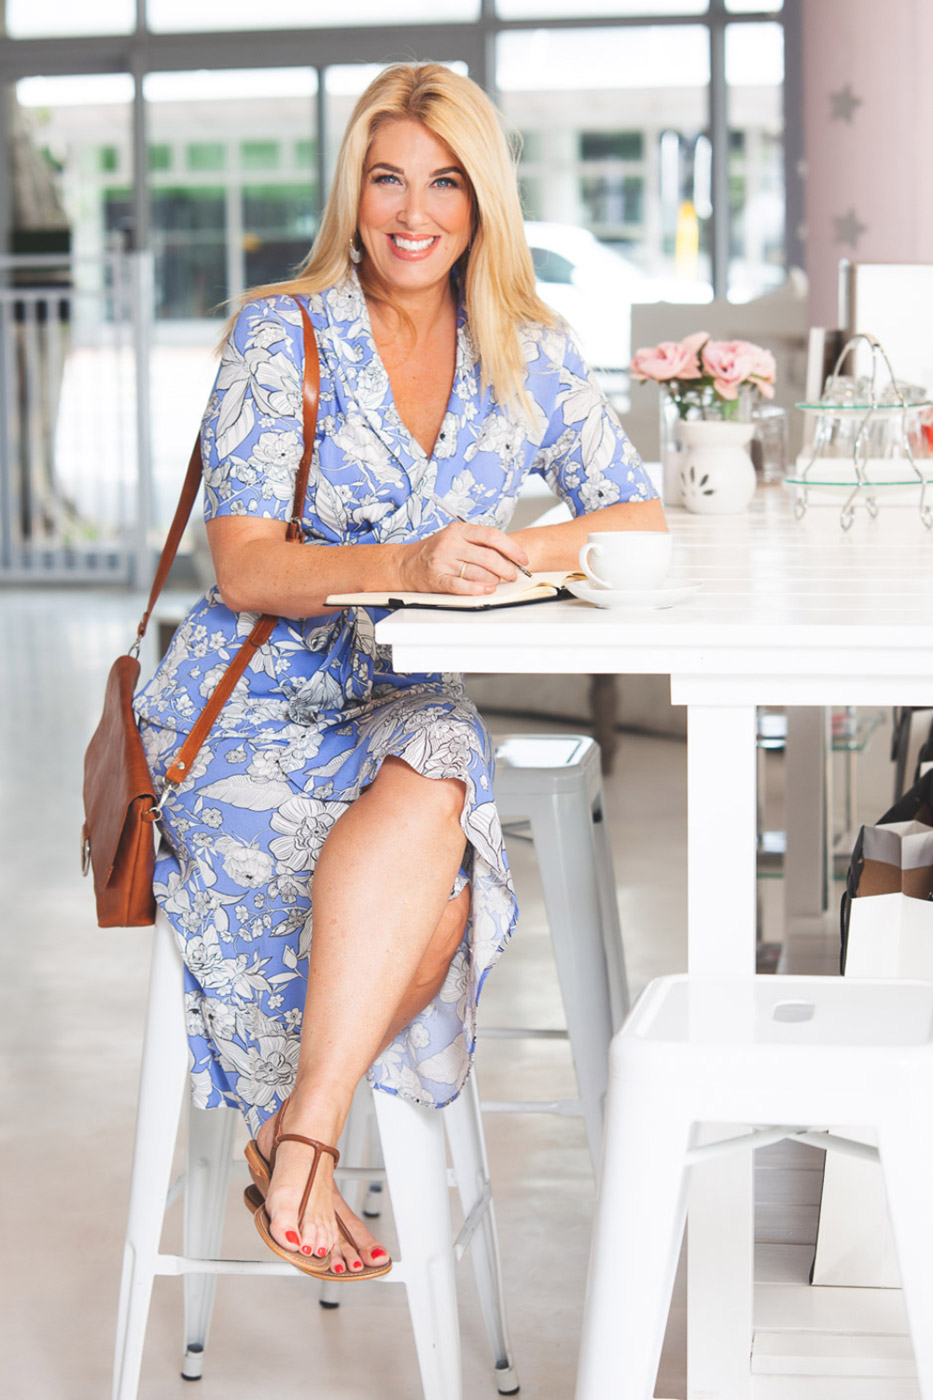 The Wrap Dress from Off The Rails Fashionista